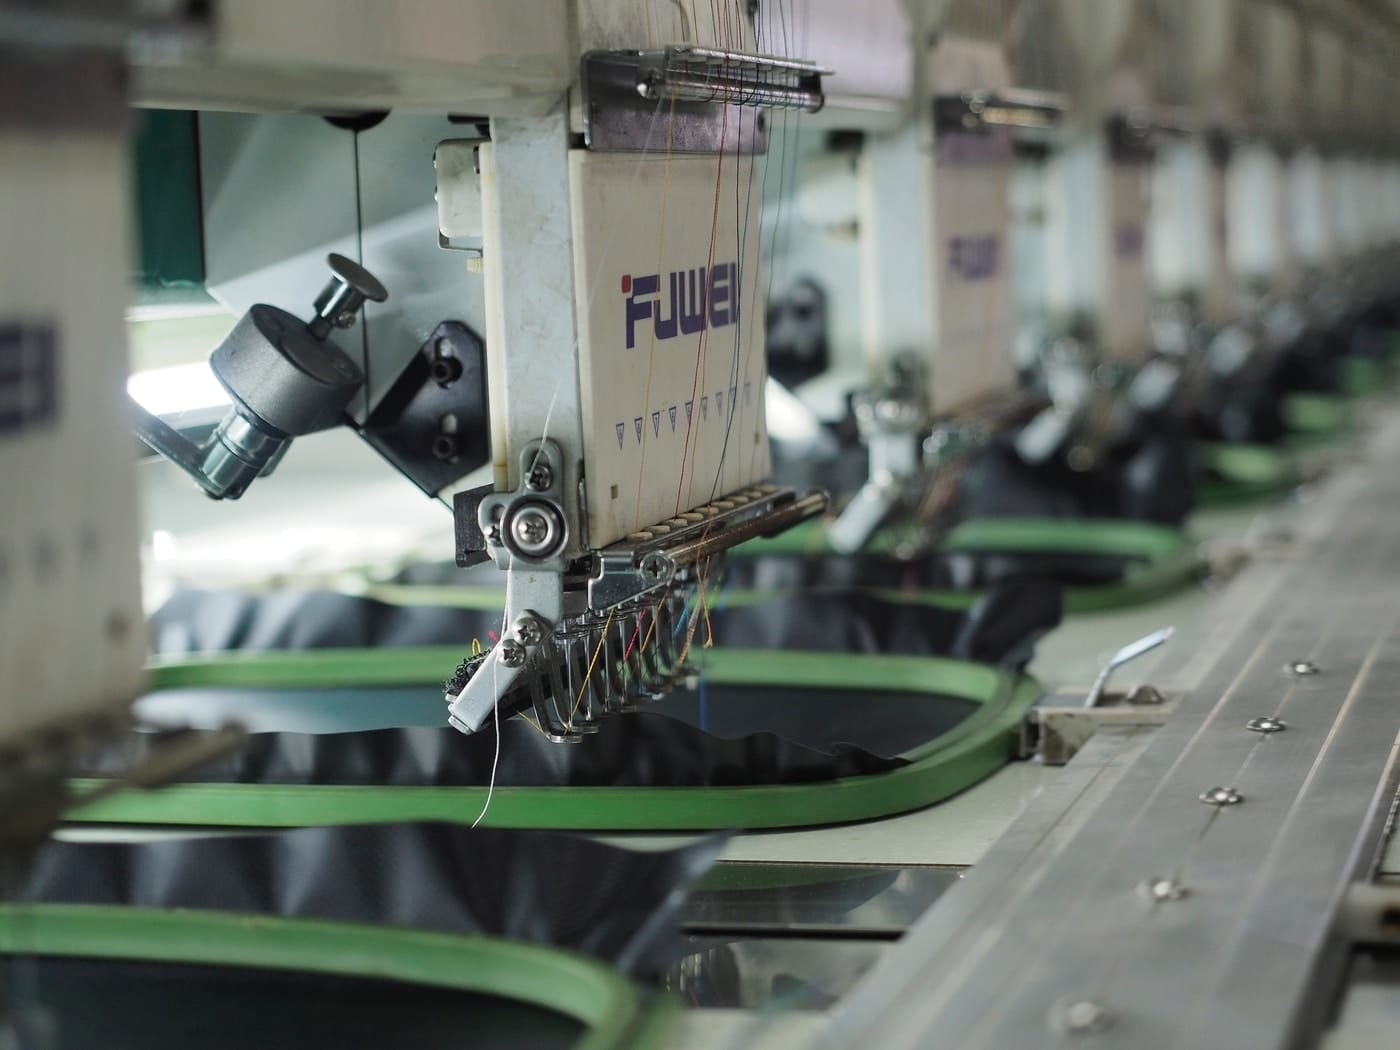 machinery in use on a manufacturing floor